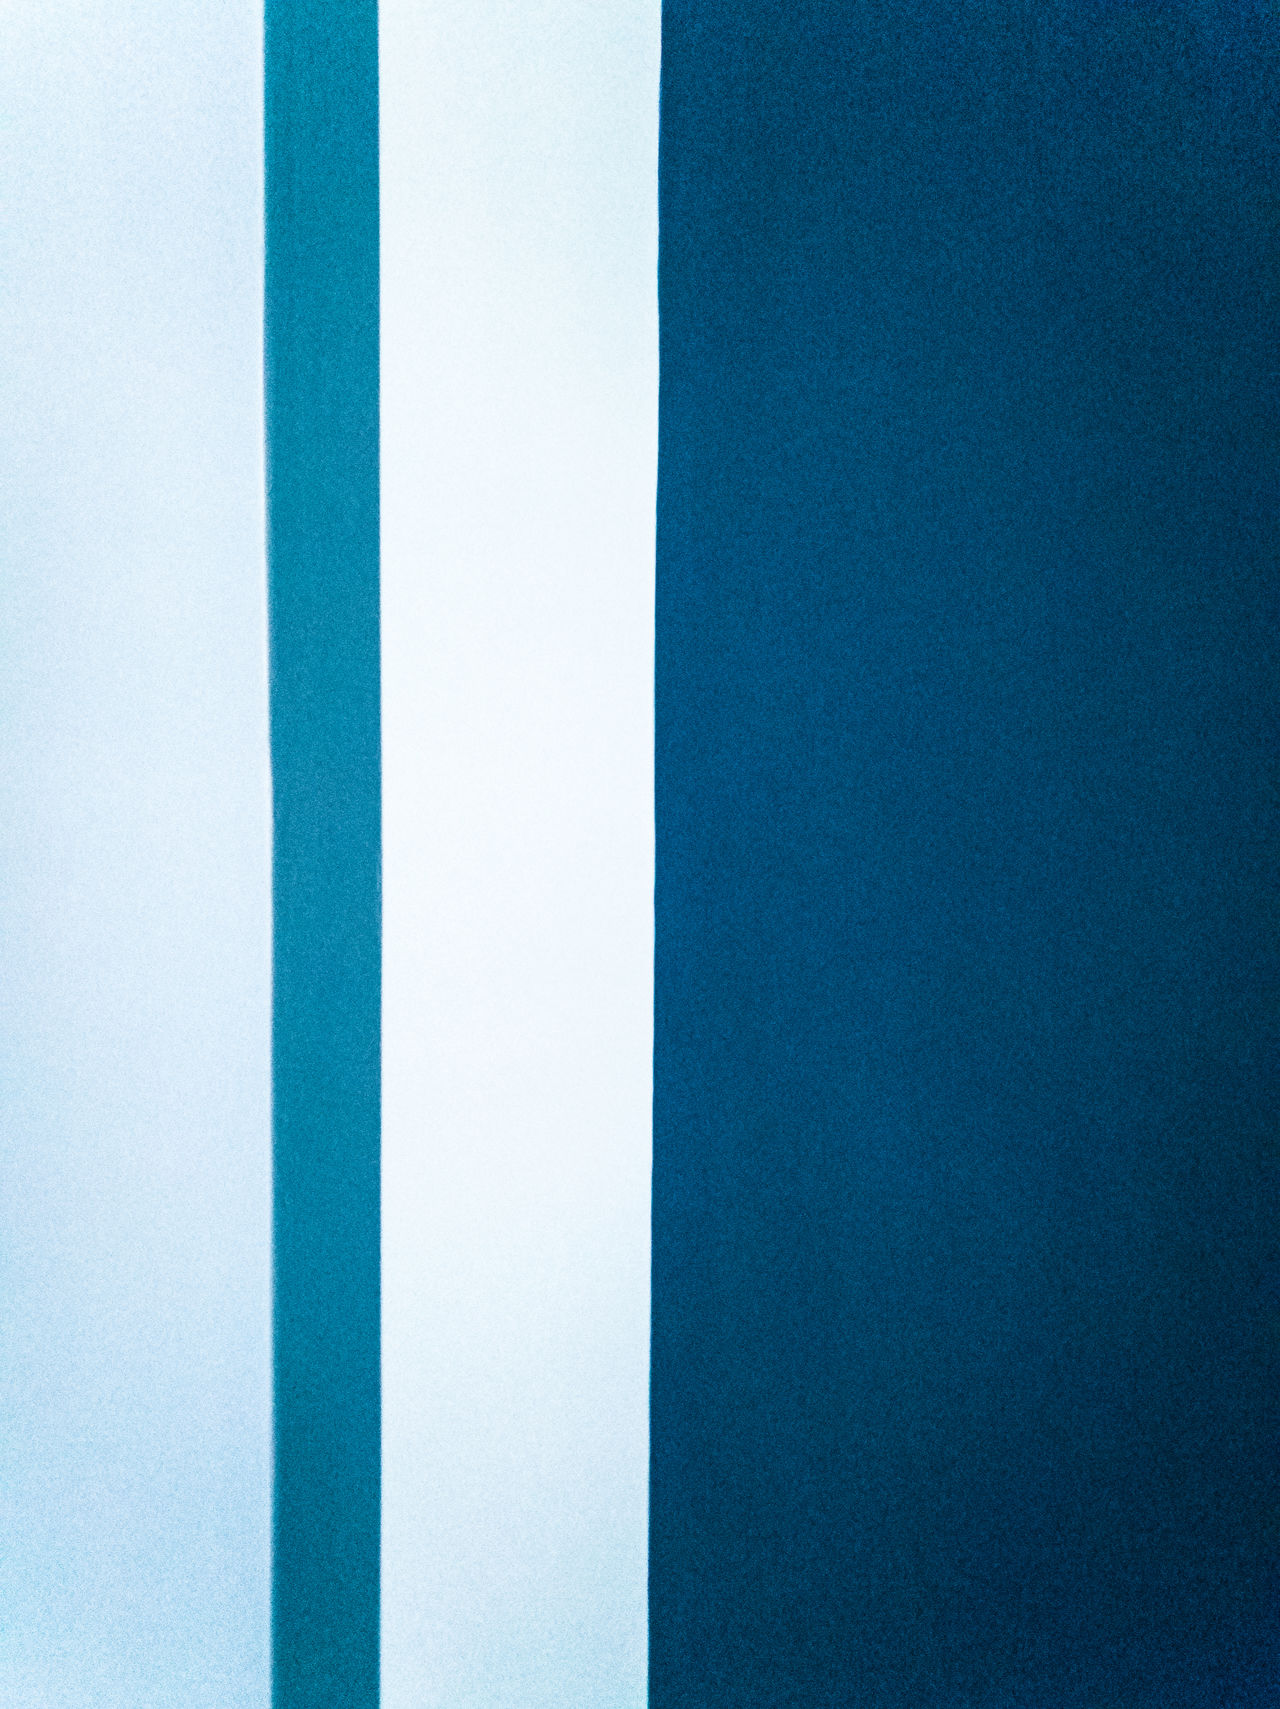 Bluemonday Abstract Architecture Backgrounds Blue Blue Monday Bluemonday Close-up Full Frame Huawei P9 Leica HuaweiP9 LINE Minimal Minimalism Minimalist Minimalistic Minimalobsession No People Pattern Simplicity Surface Structure Surfaces And Textures Textured